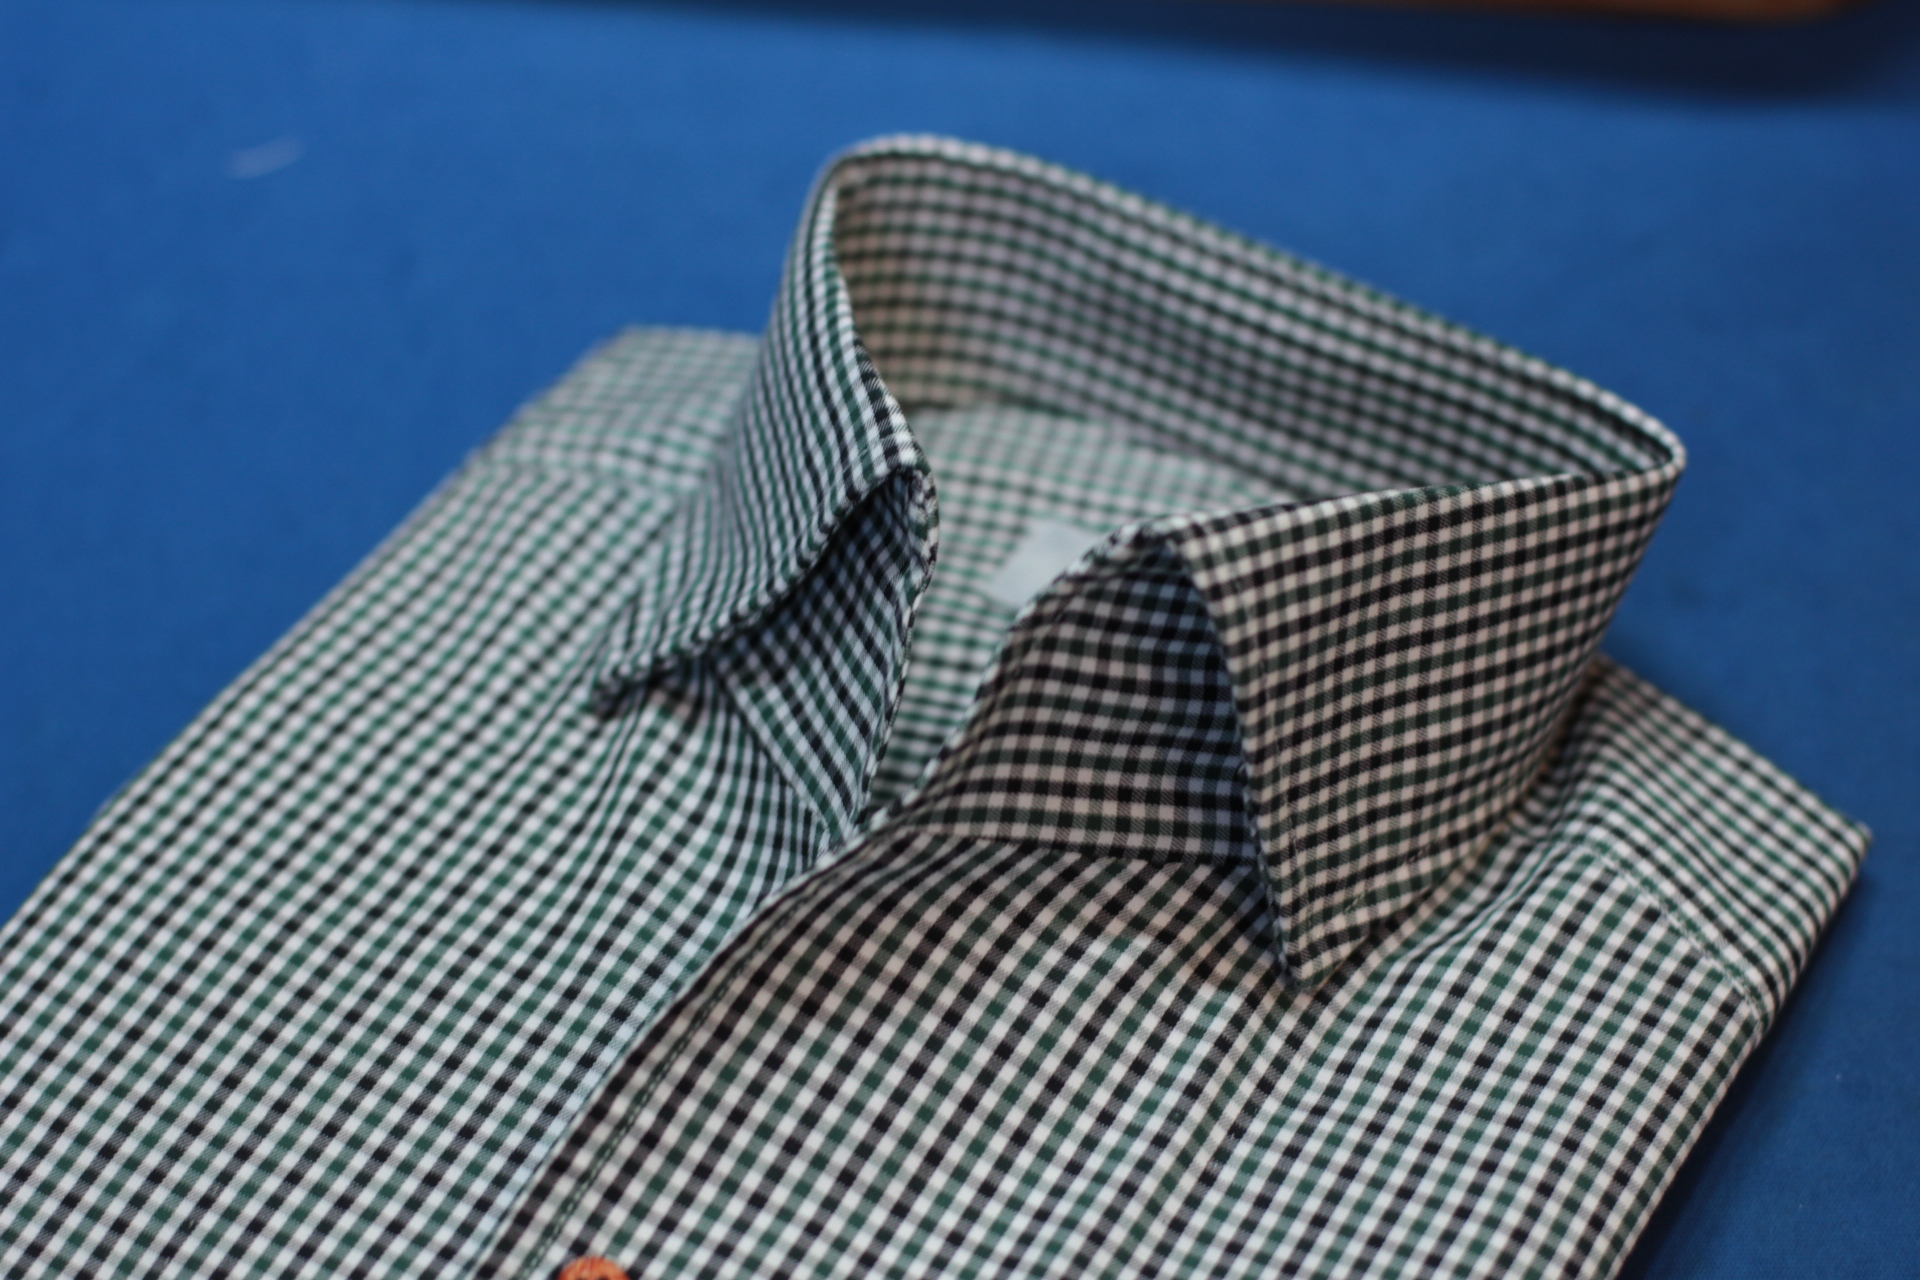 Green Checks One Piece Collar Made Suits Shirts | Made to measure Shirts 1.JPG